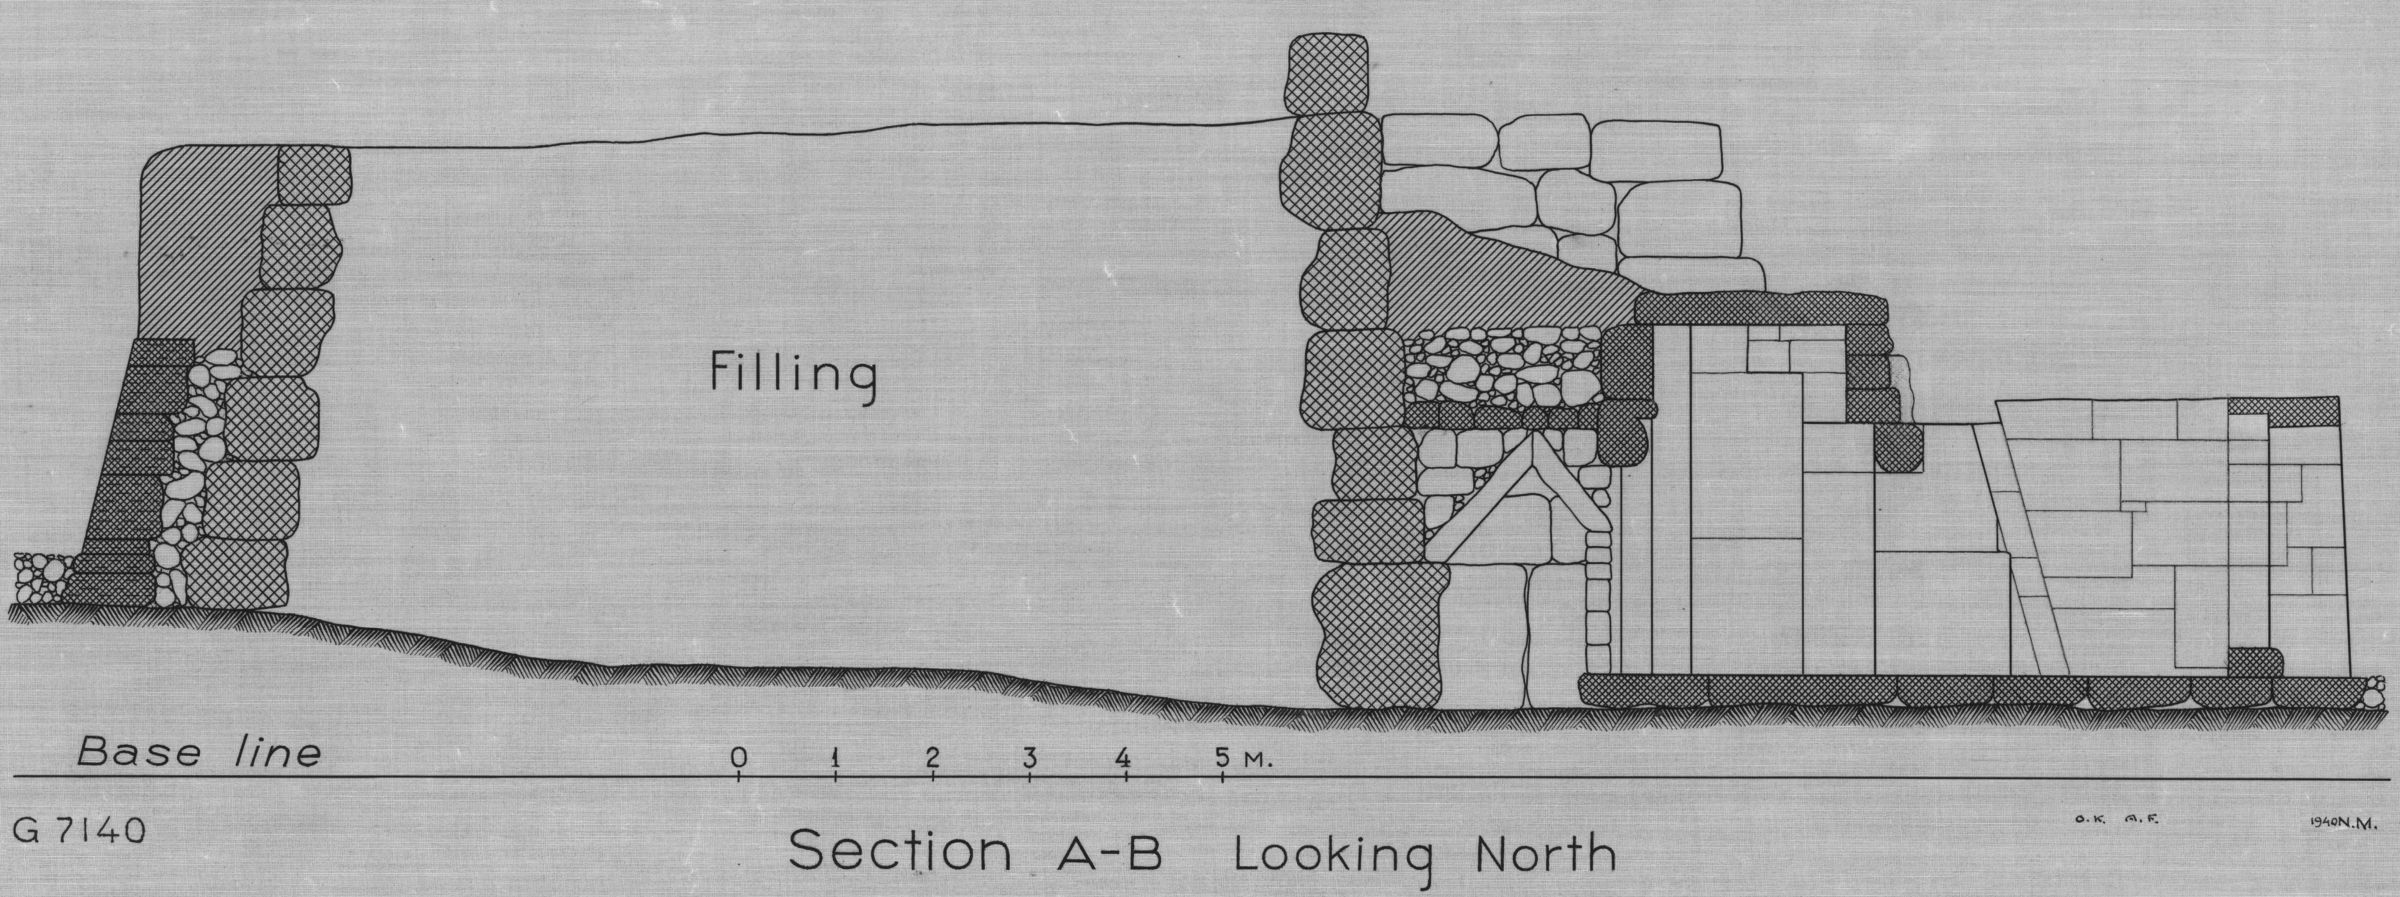 Maps and plans: G 7130-7140: G 7140, section, looking N